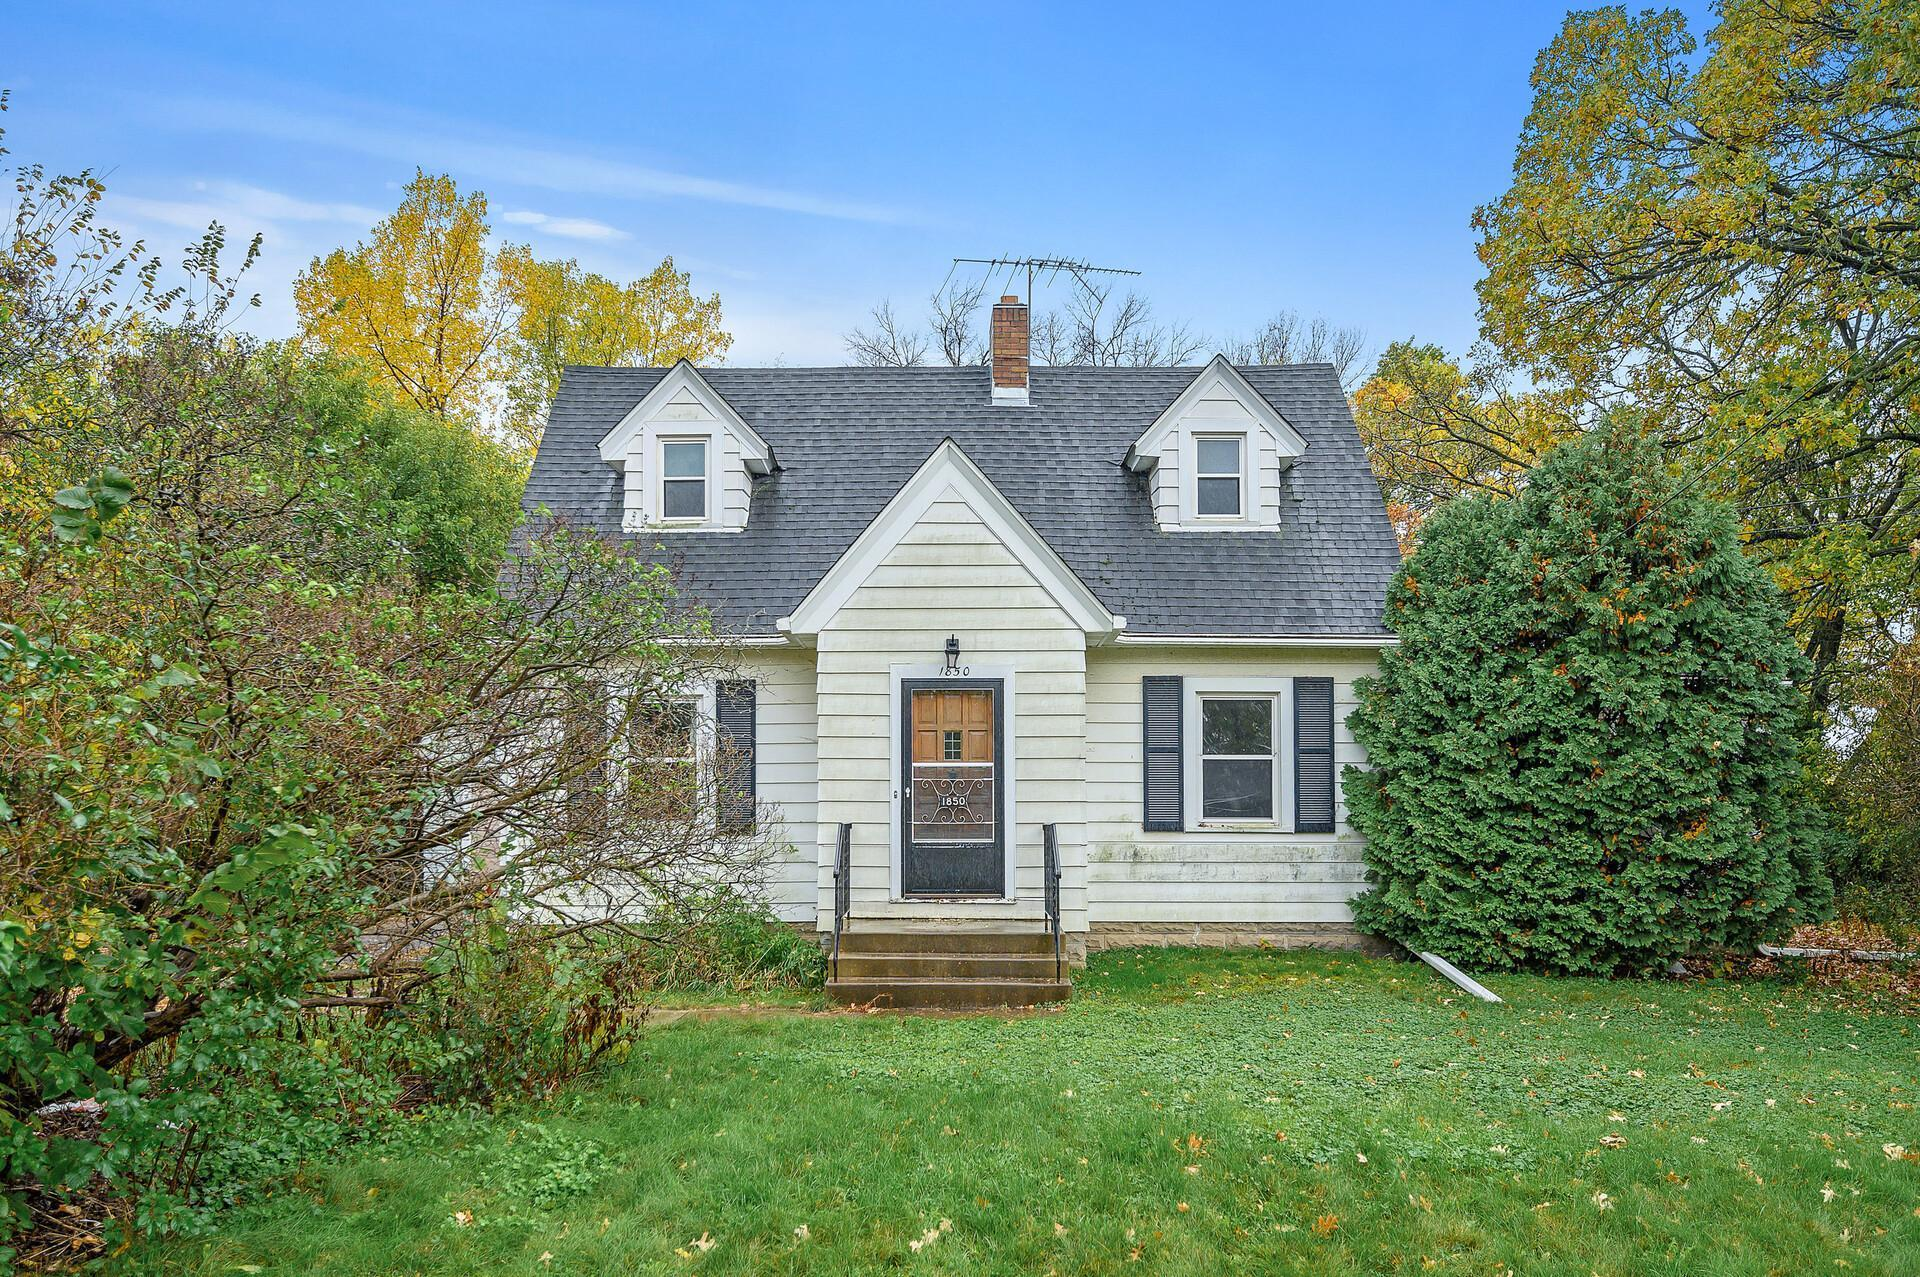 1850 County Road B E, Maplewood, MN 55109